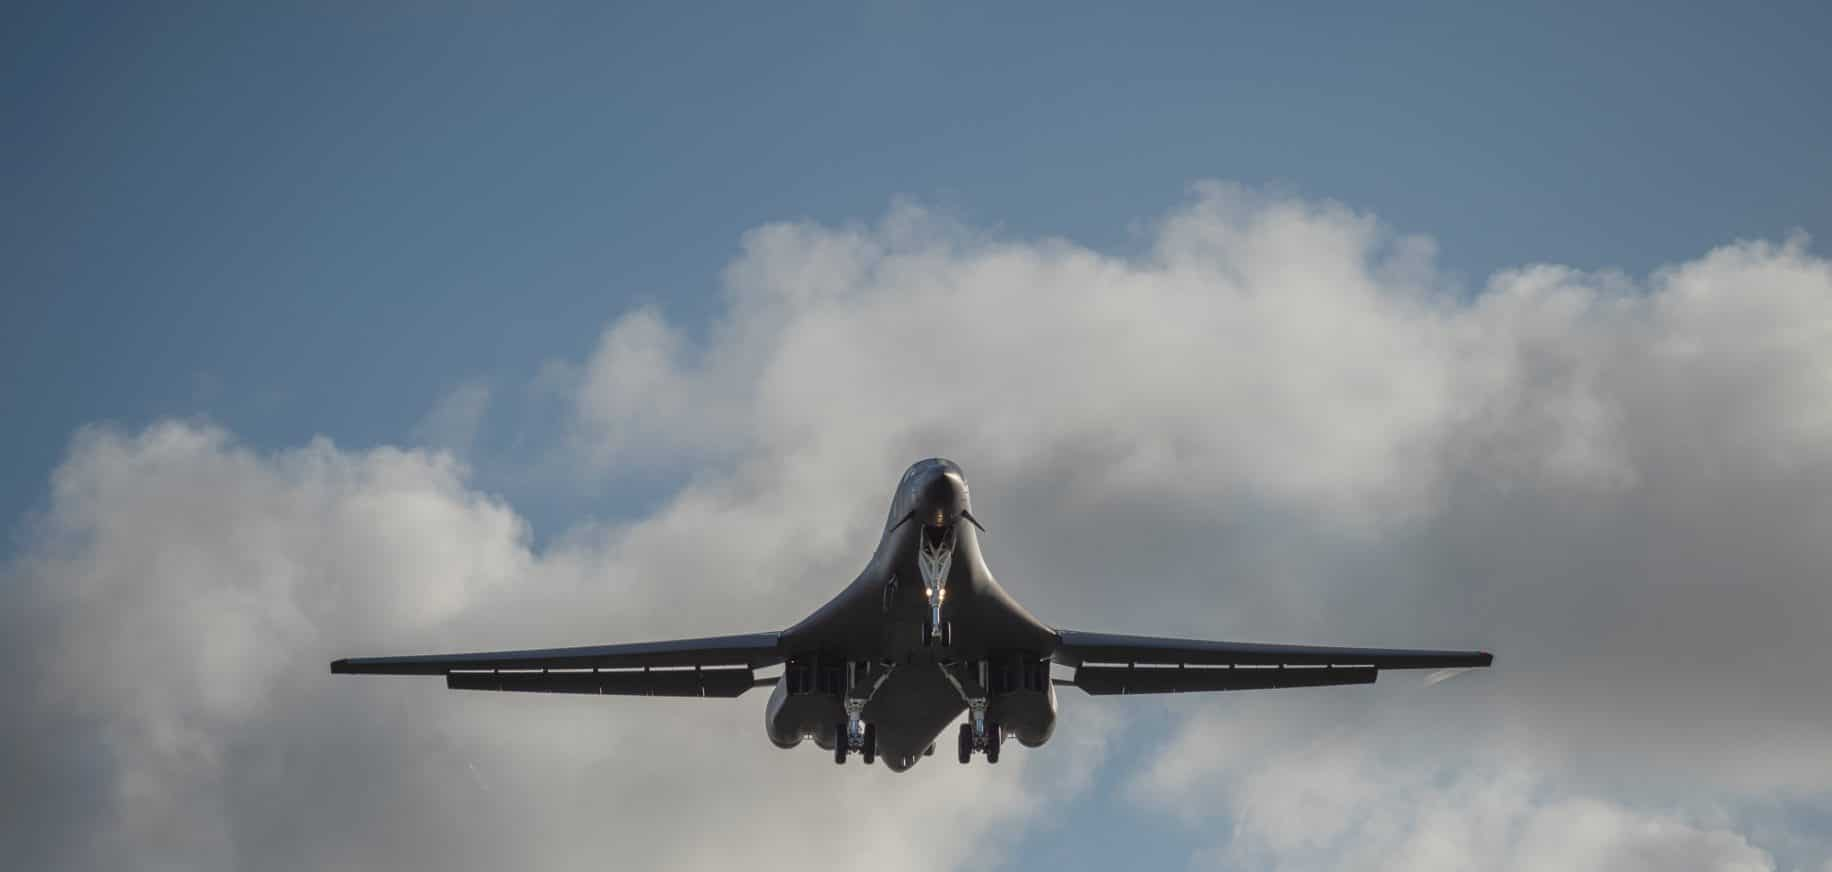 Pics: US B-1B bombers just flew over the South China Sea